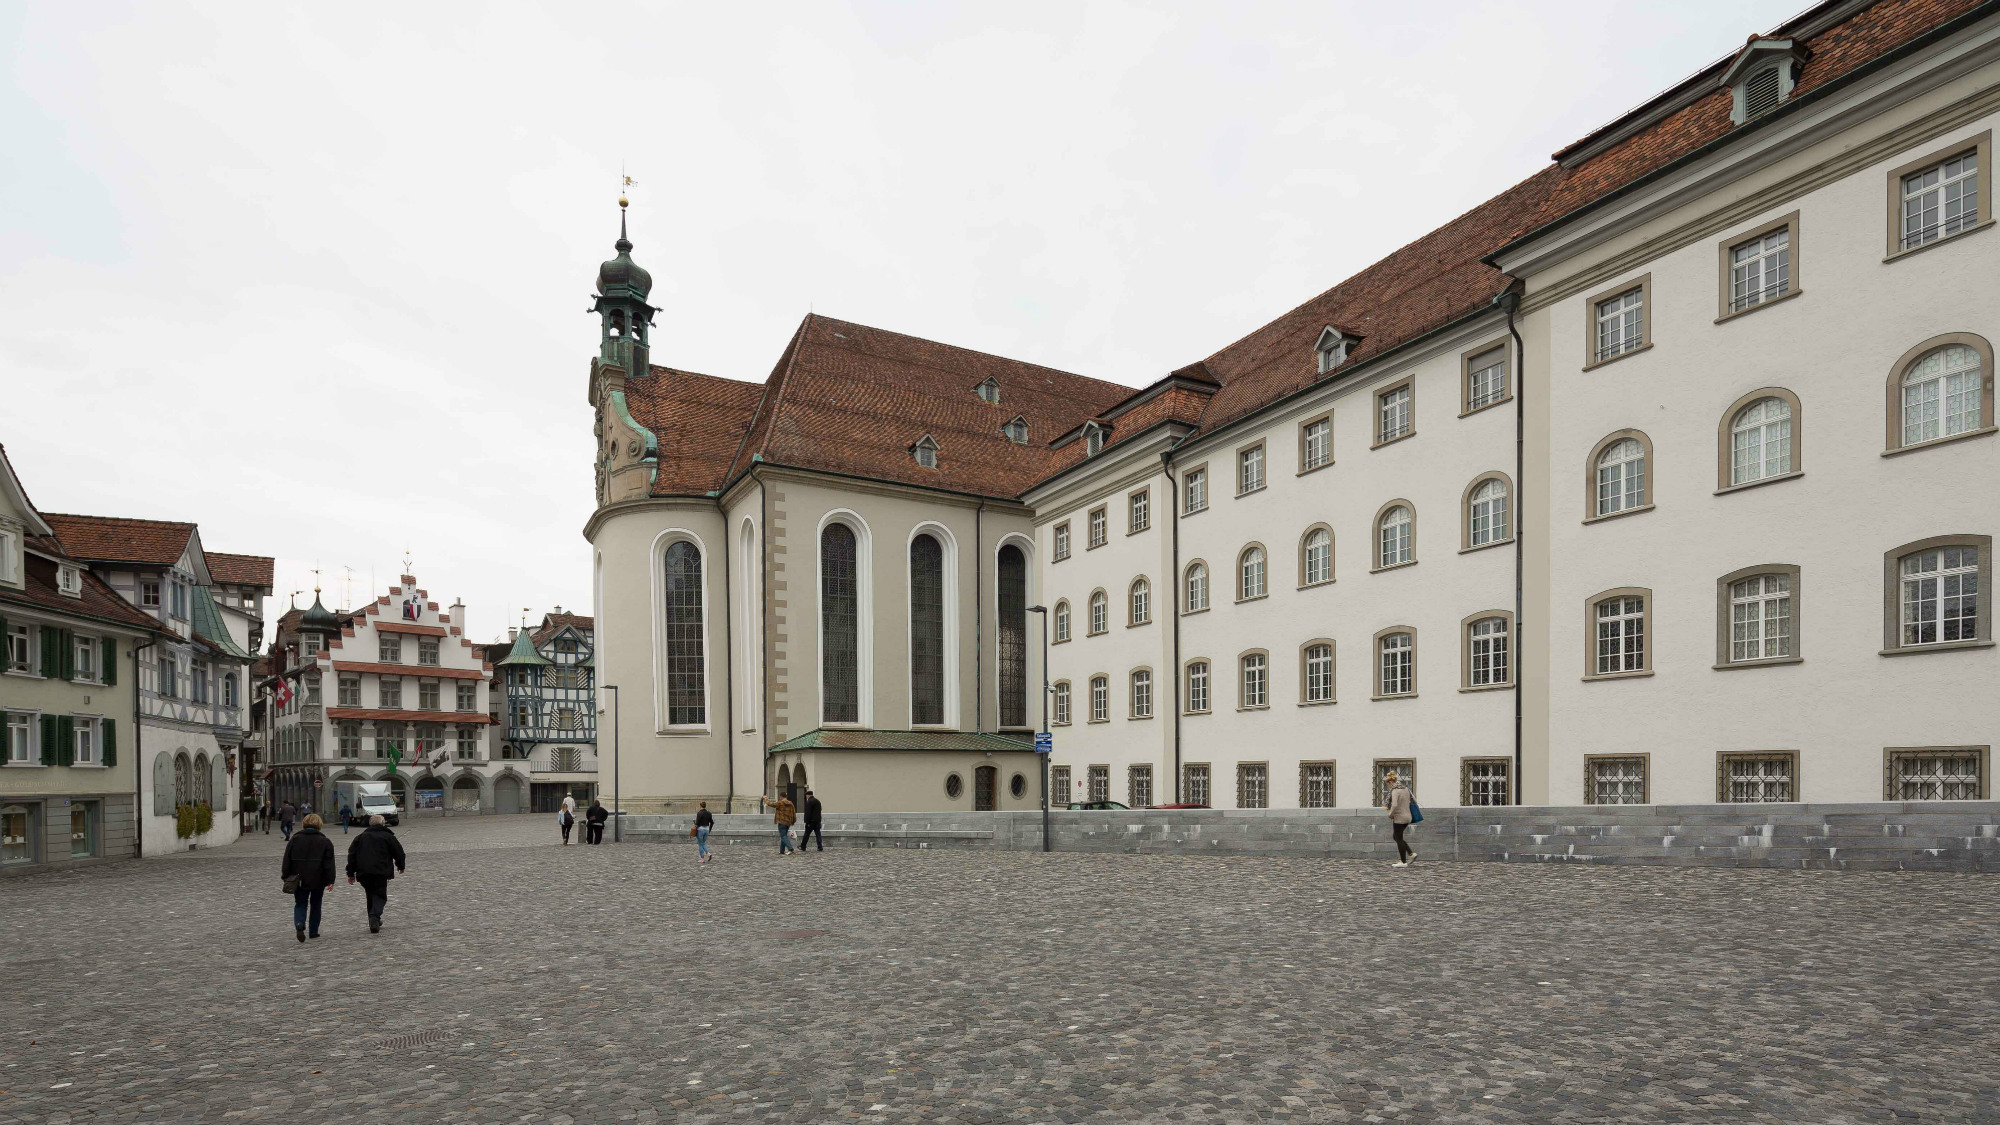 Town square called Klosterplatz in St.Gallen